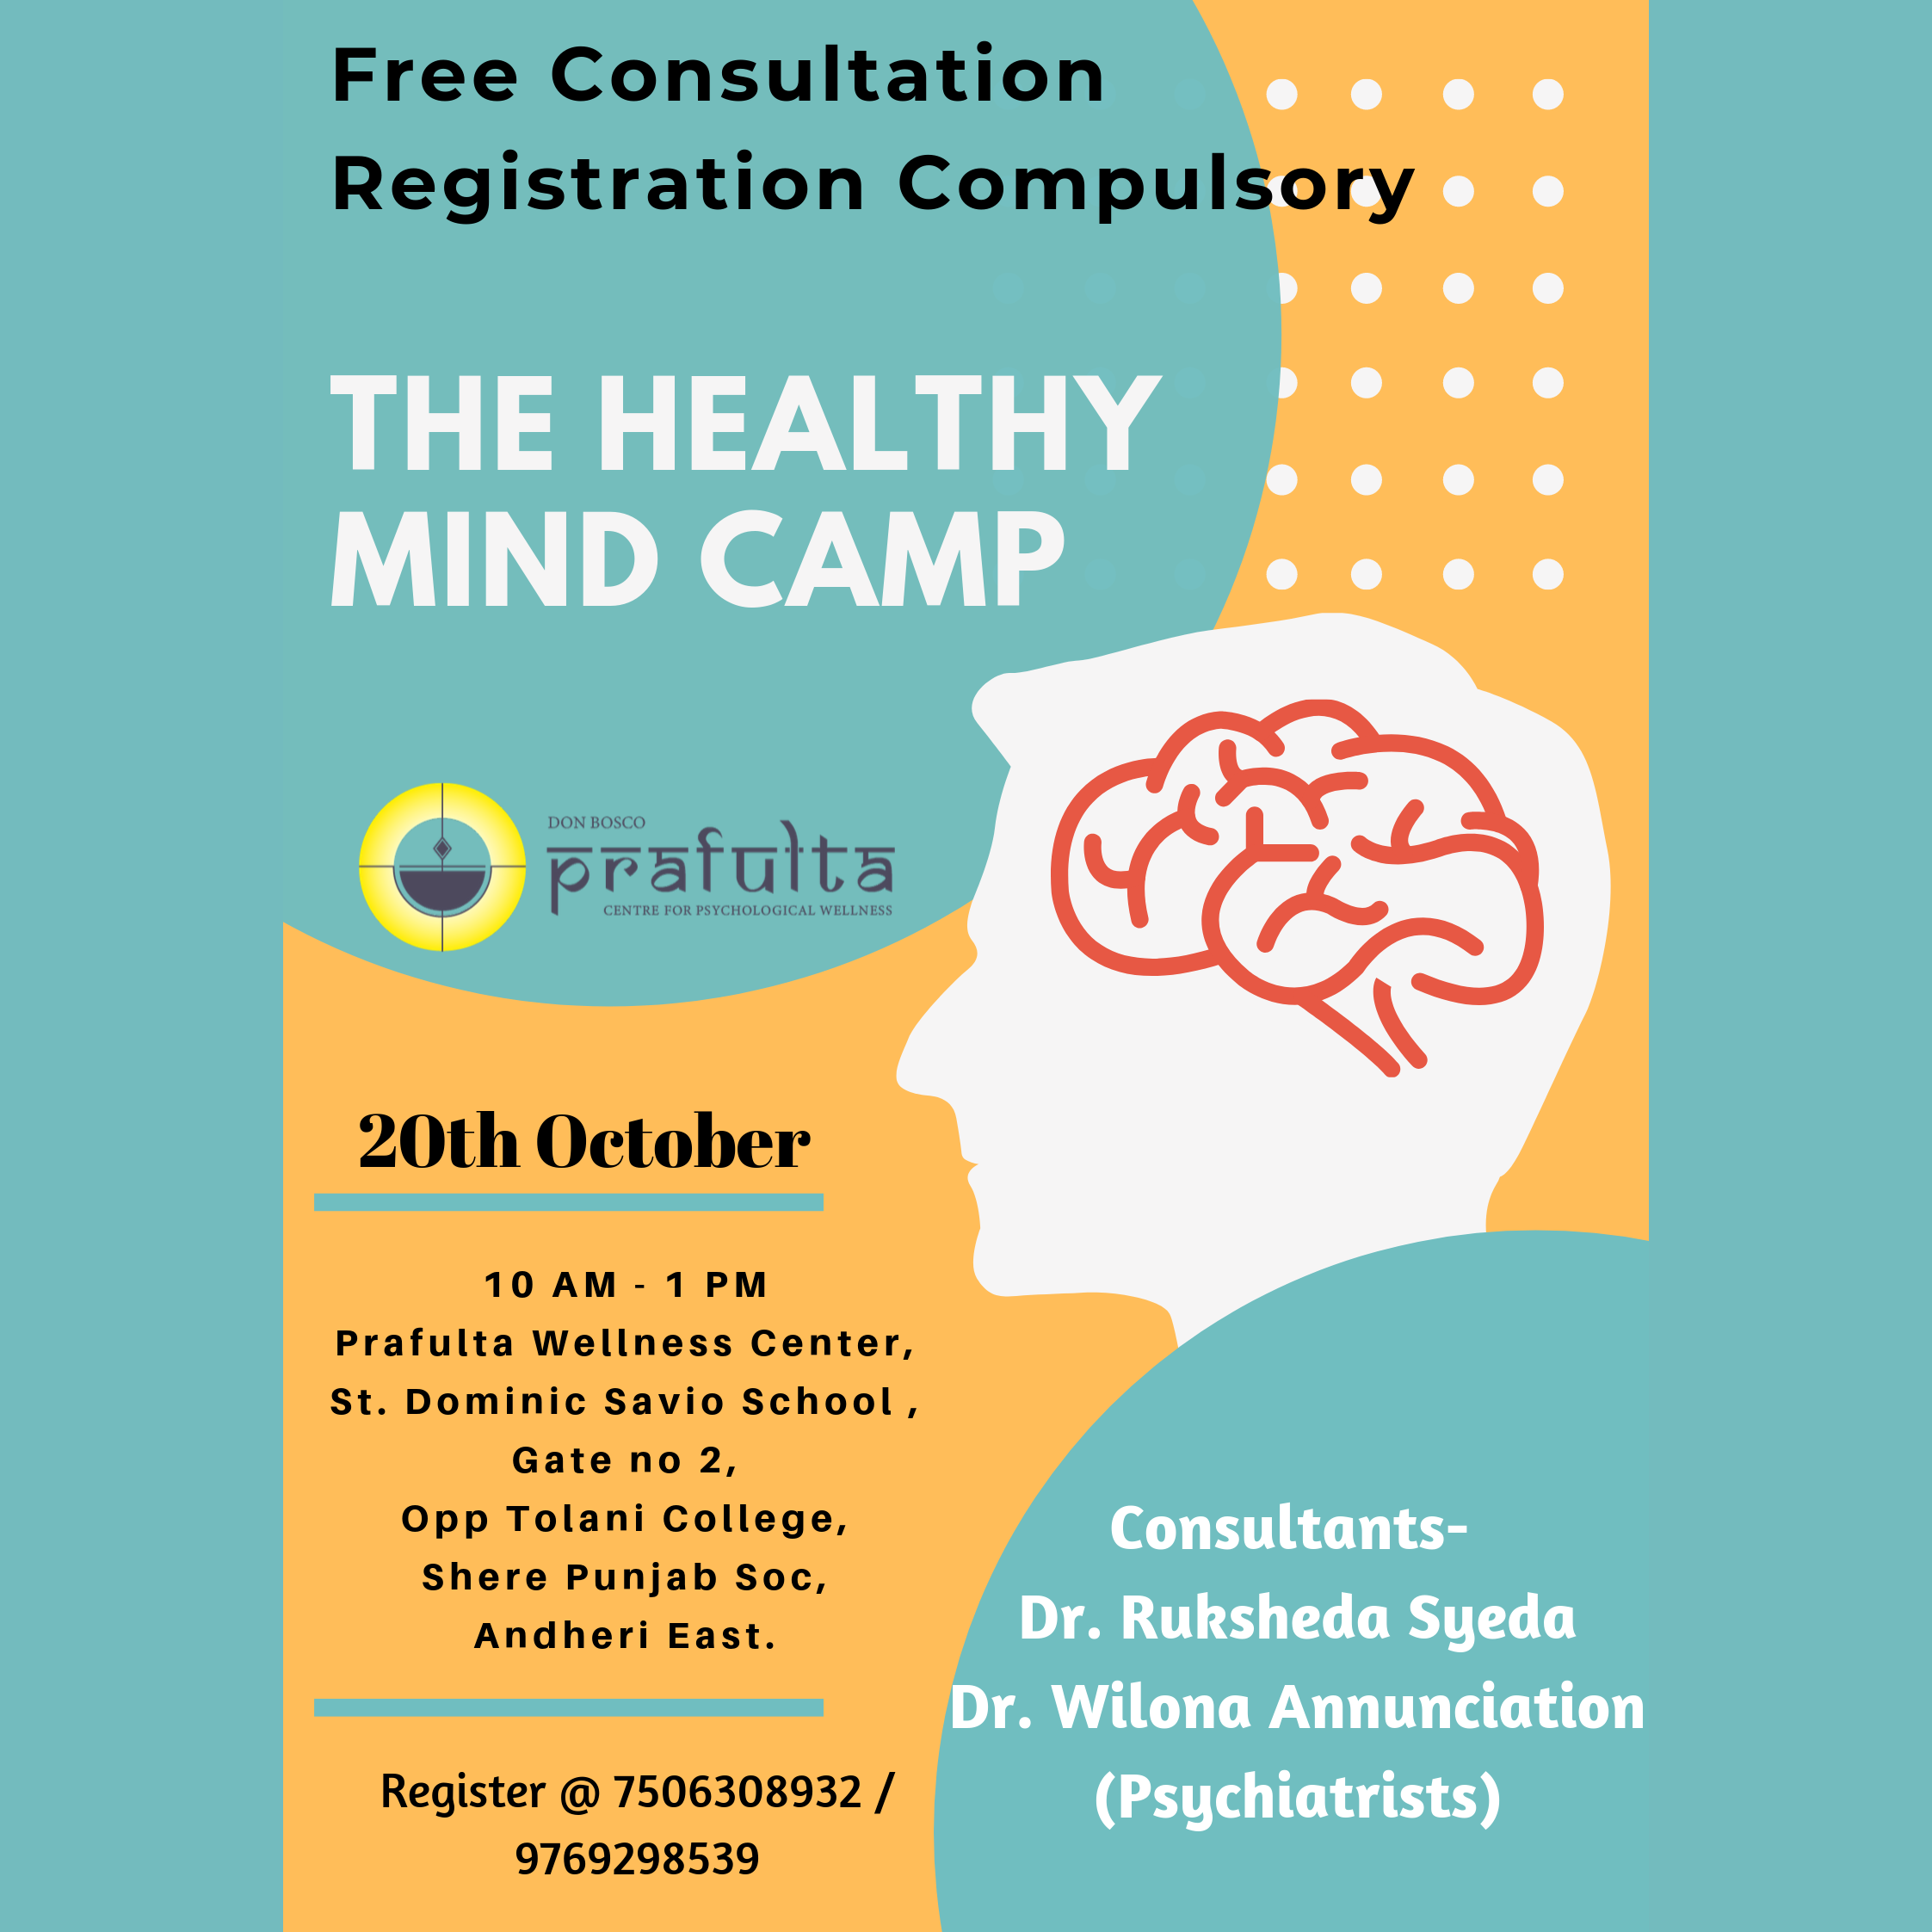 The Healthy Mind Camp